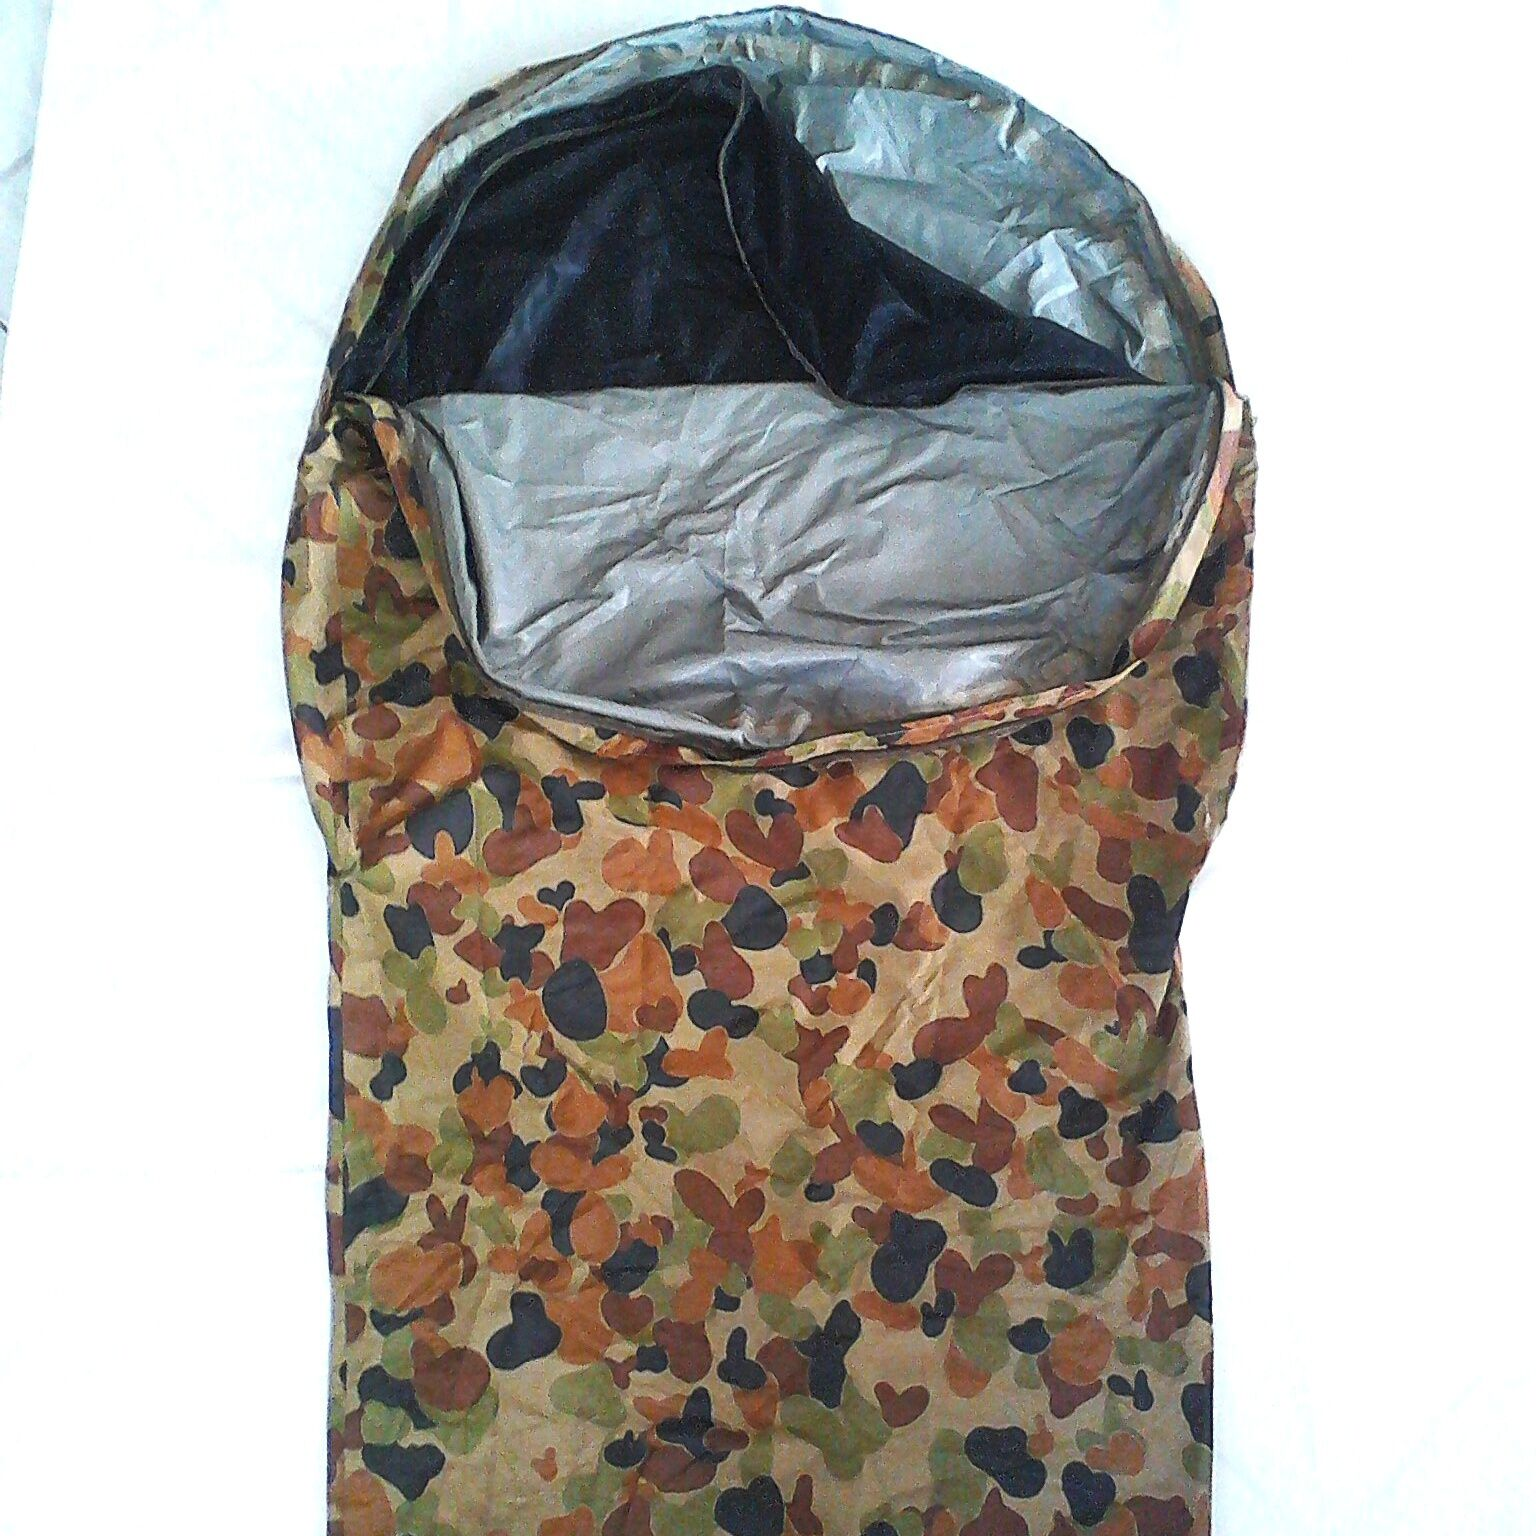 AUSTRALIAN MILITARY  BIVVY BAG LARGE AUSCAM - 232X107X82CM 3 LAYER BREATHABLE  best quality best price